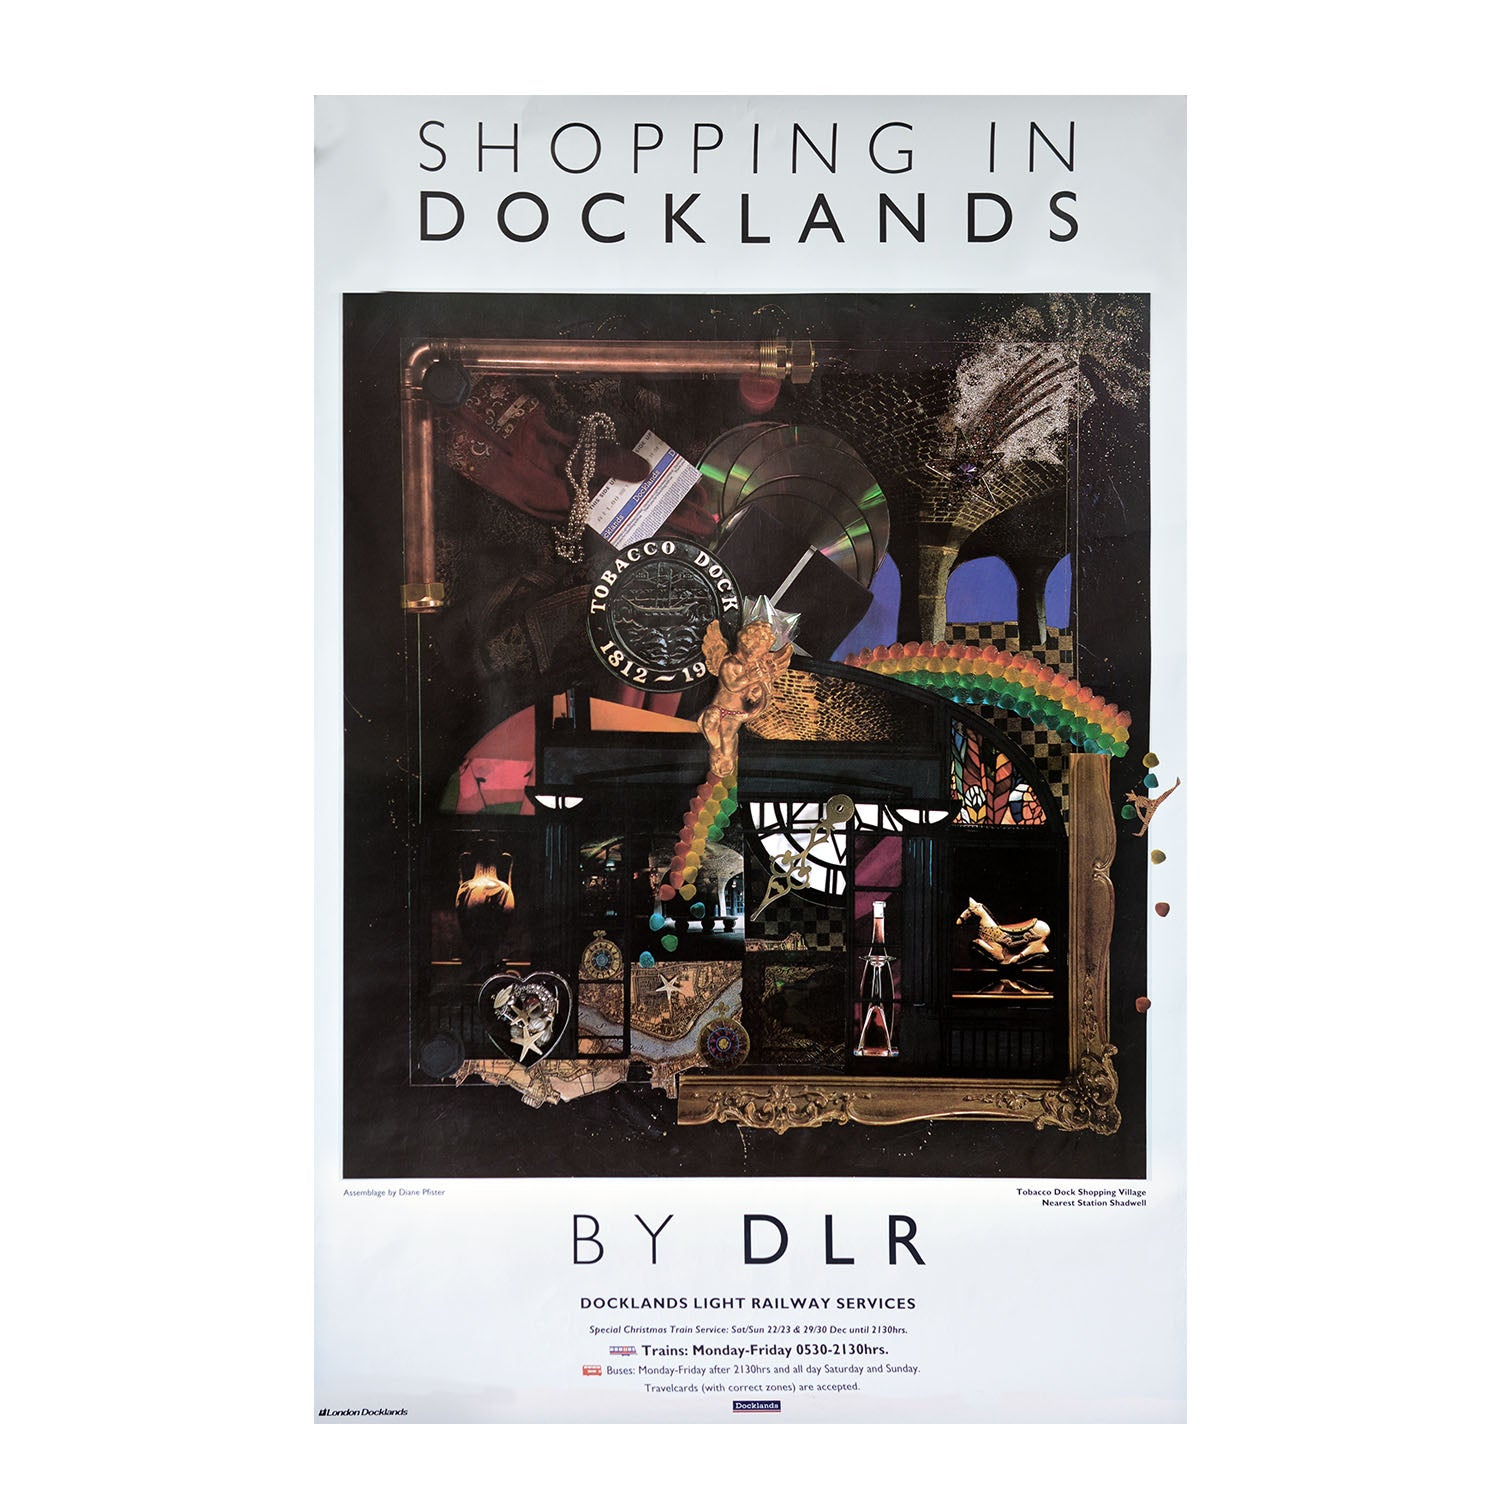 Original Docklands Light Railway poster by Diane Pfister